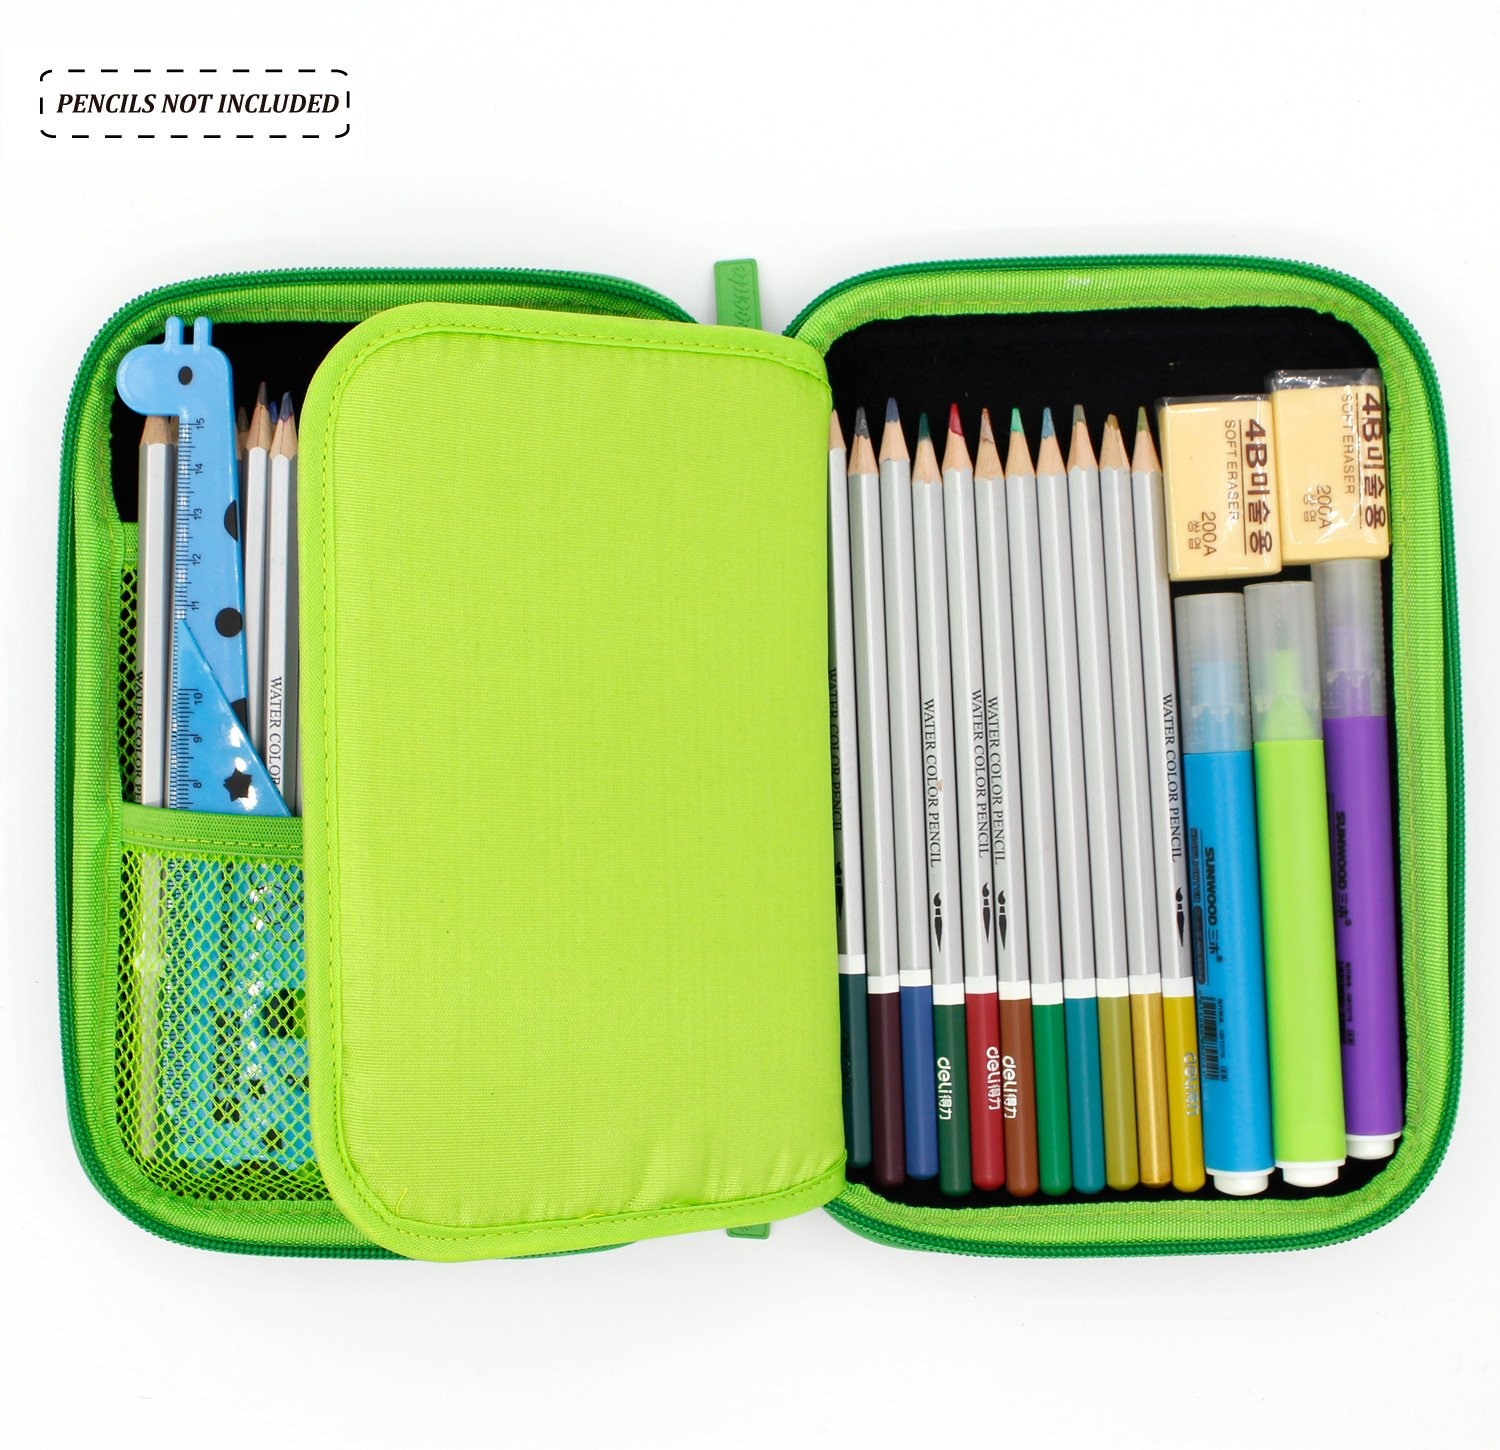 Amazon.com : Boys Cute School Supply Organizer Cool Pencil Case Box Holder  Bag With Zipper For Kids (Green) : Office Products